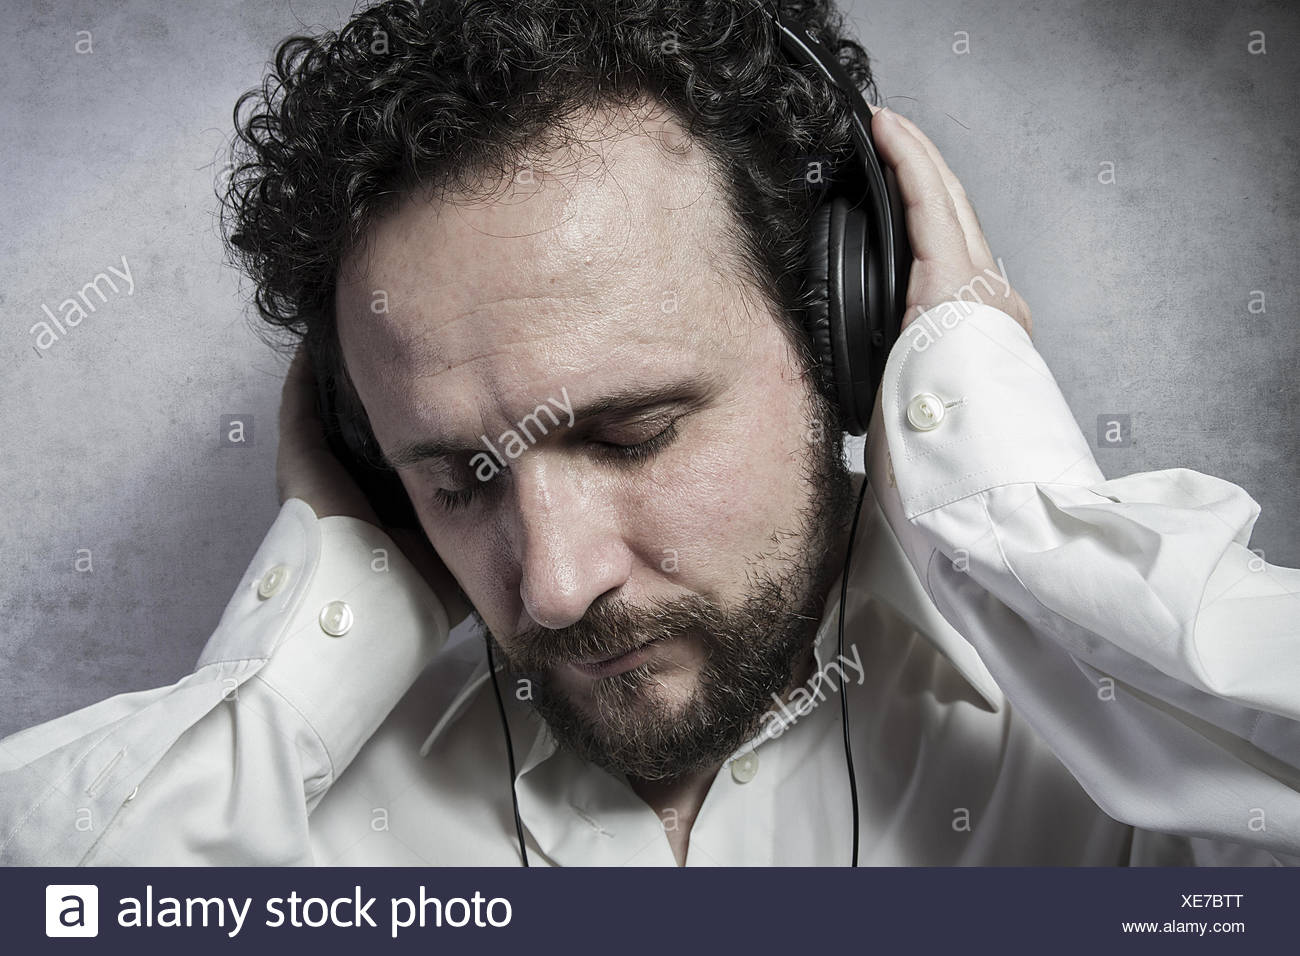 Listening And Enjoying Music With Headphones Man In White